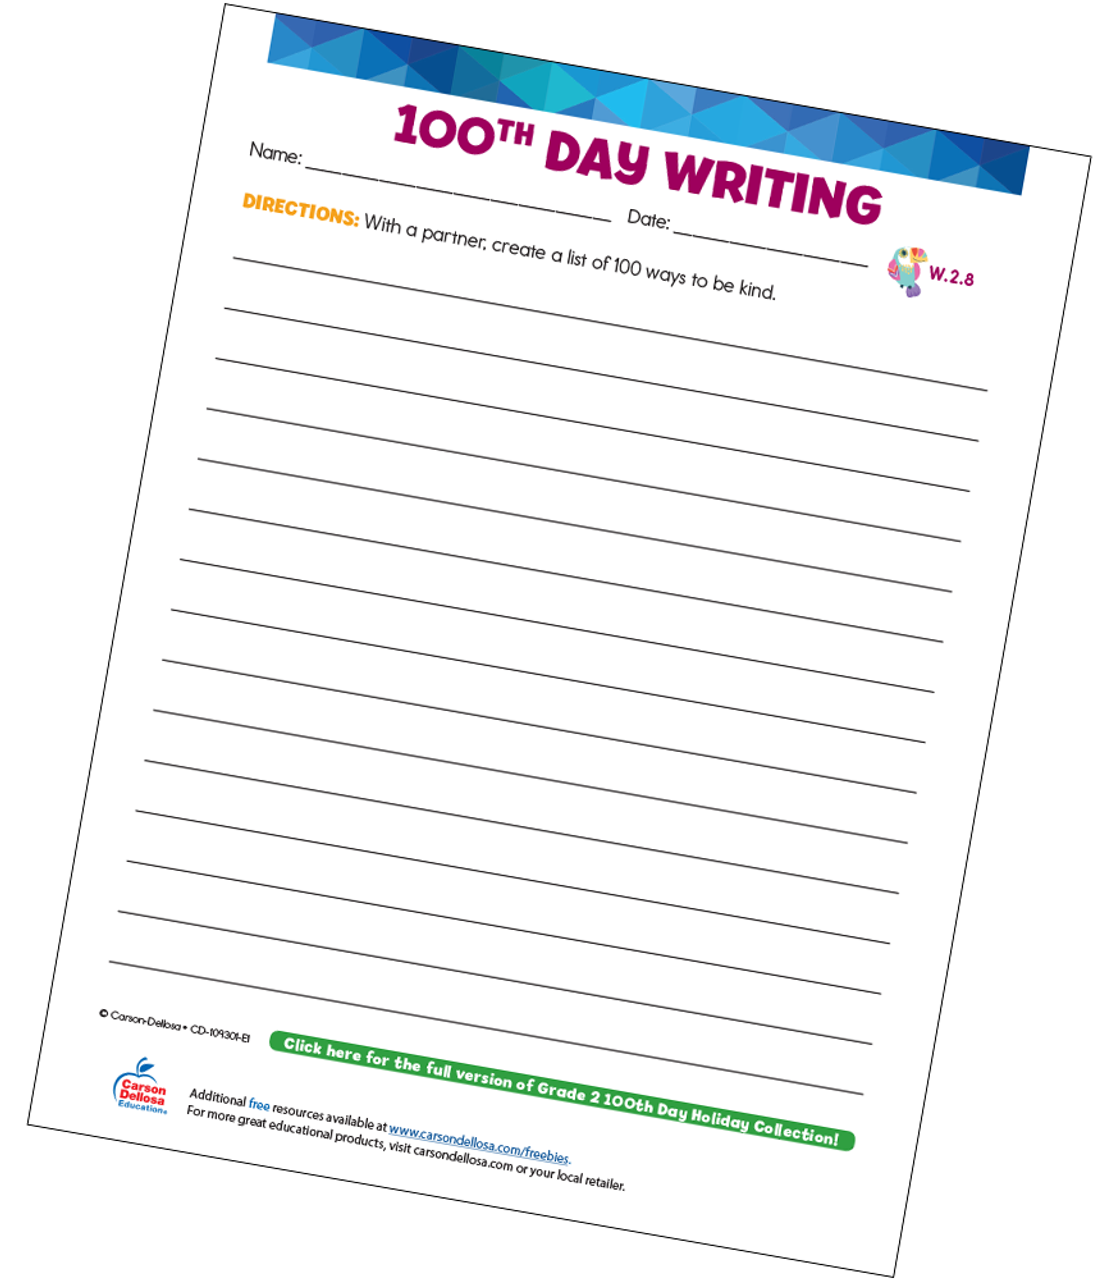 picture regarding Free Printable Writing Prompts identified as 100th Working day Producing Advised Quality 2 Absolutely free Printable Carson Dellosa